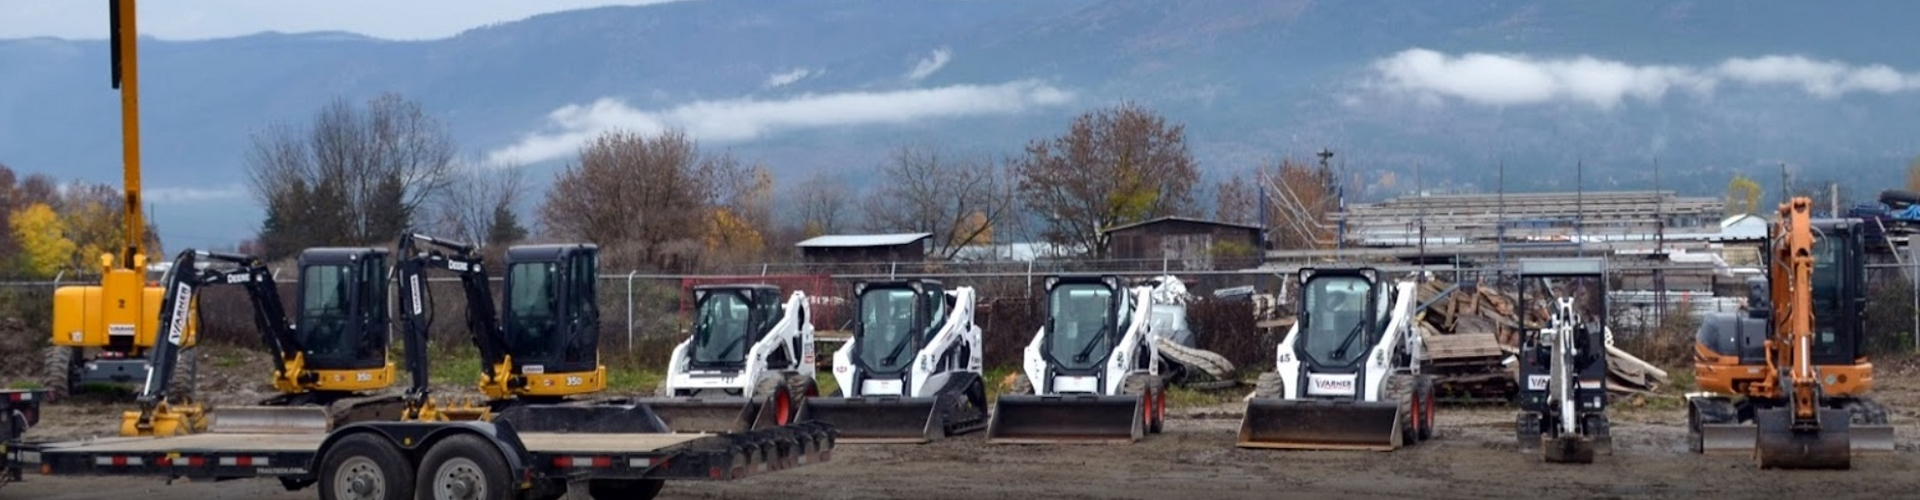 Equipment Rentals in Kamloops & Central BC